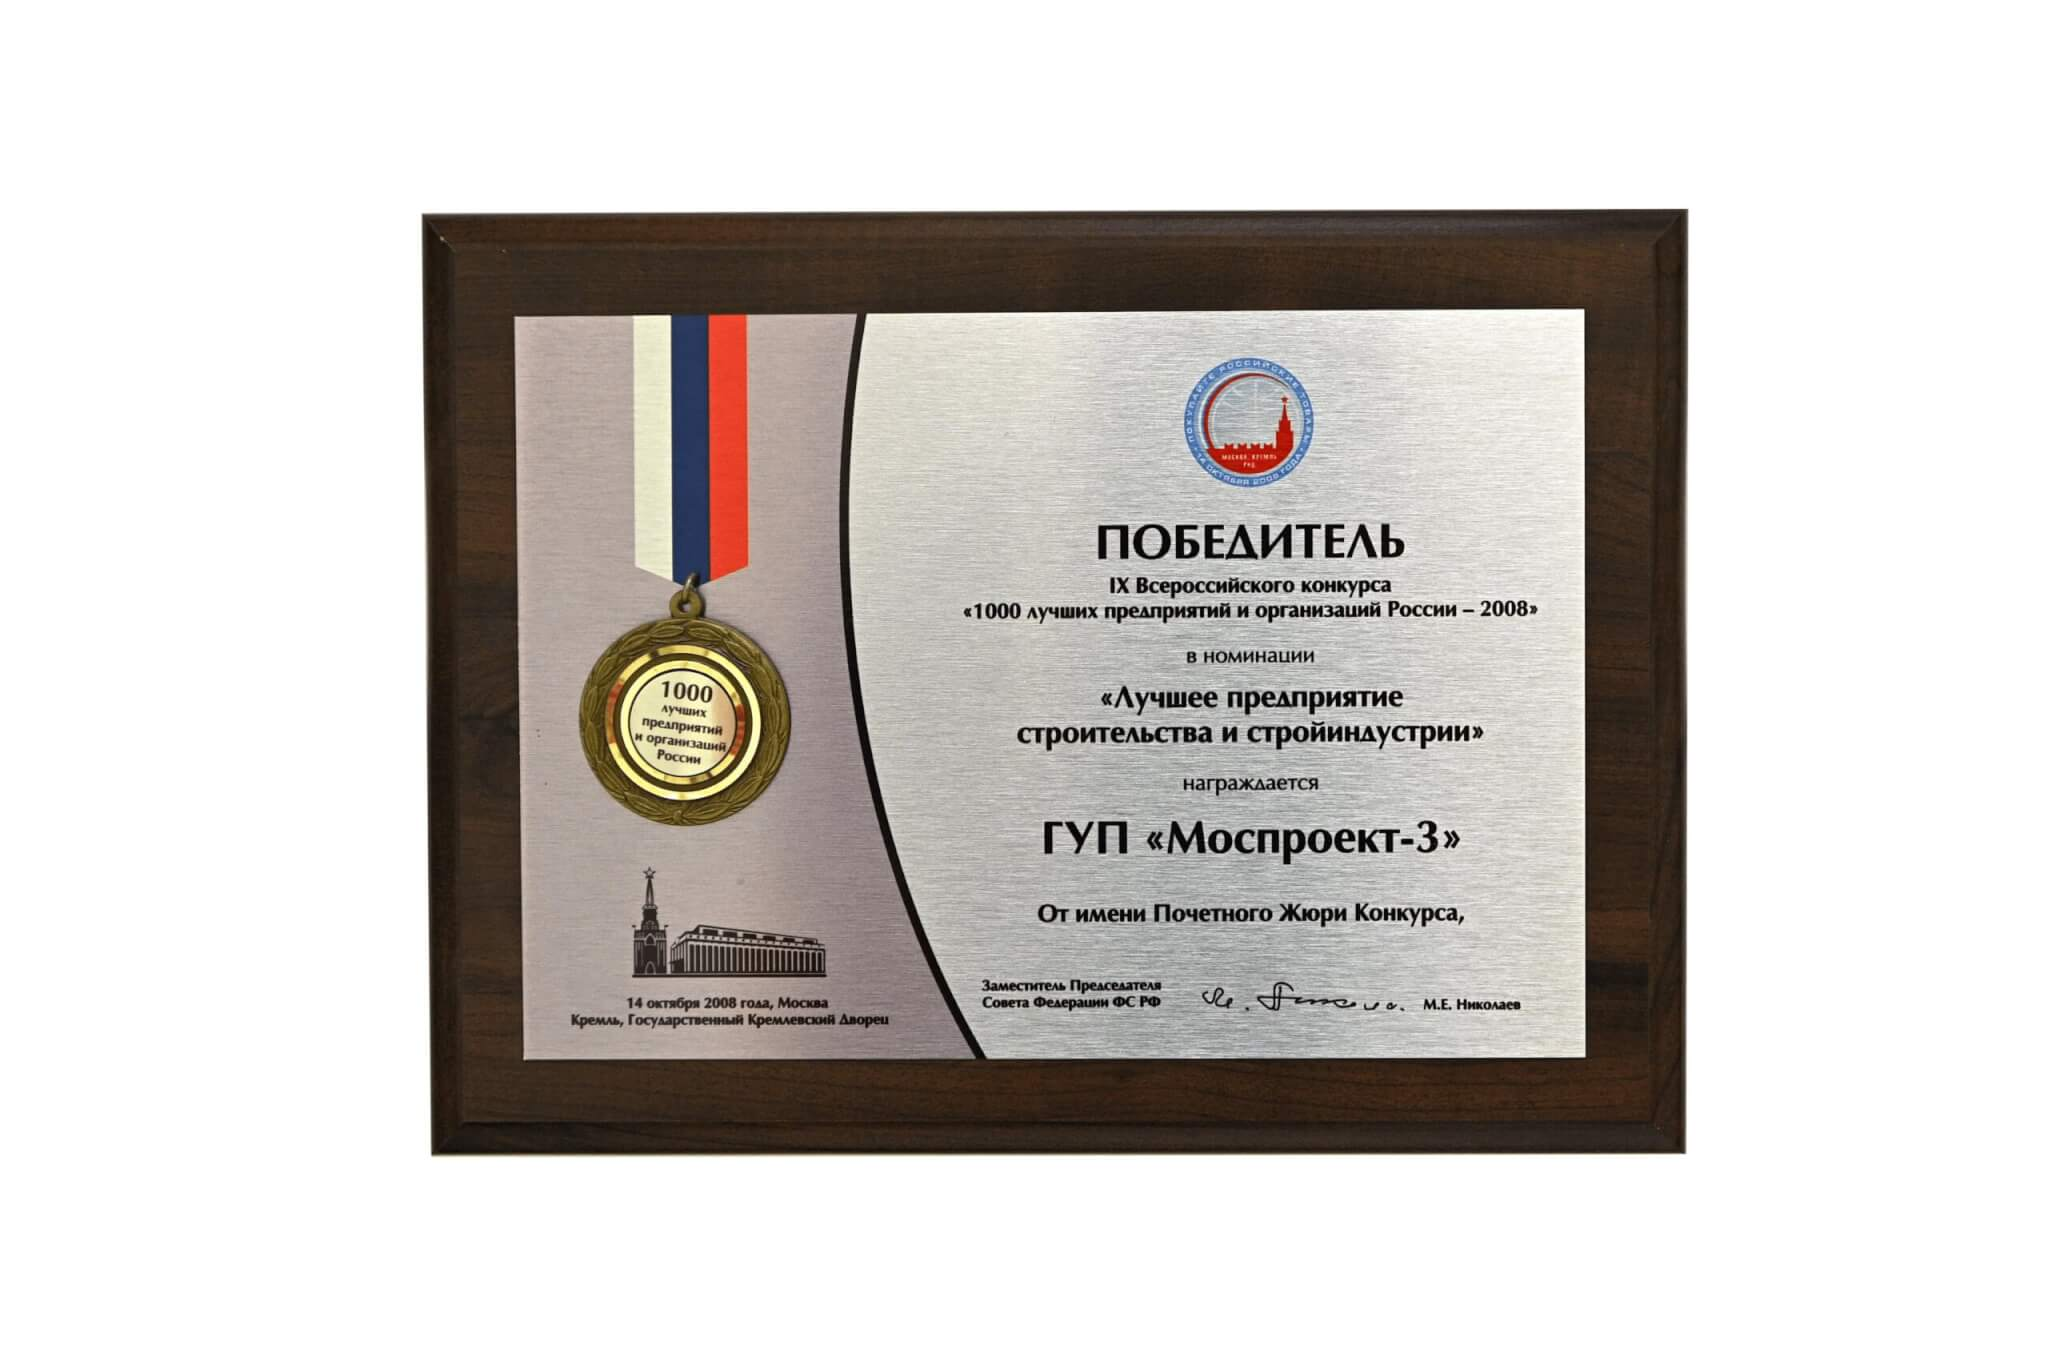 """Winner of the All-Russian competition """"1000 best enterprises and organizations of Russia-2008"""""""